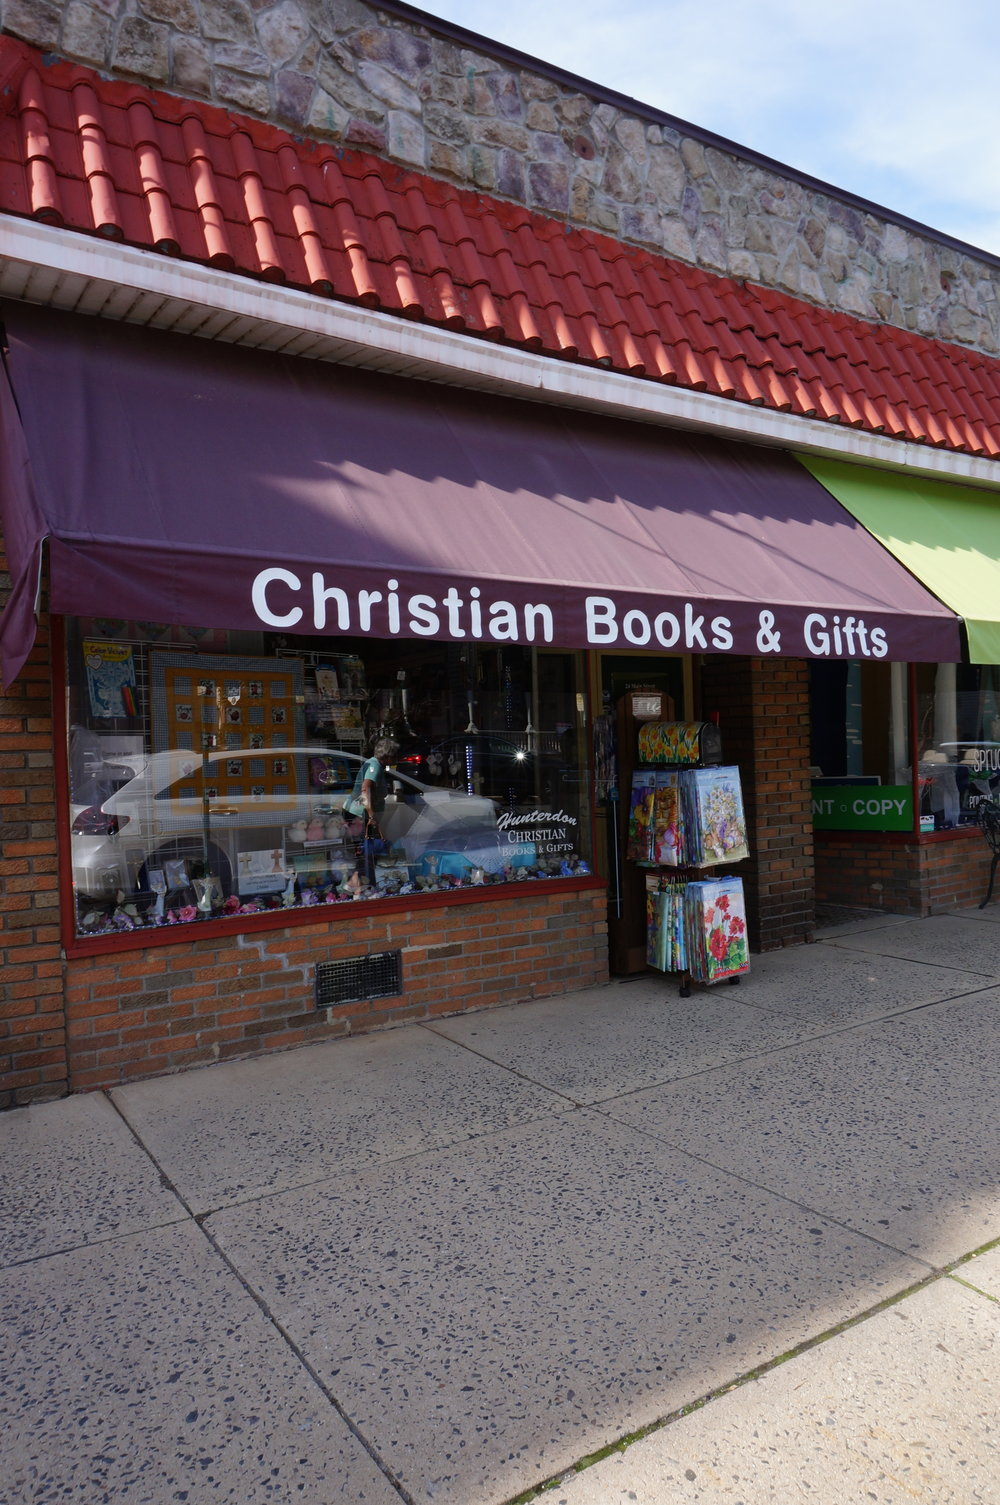 hunterdon_christian_books.jpg